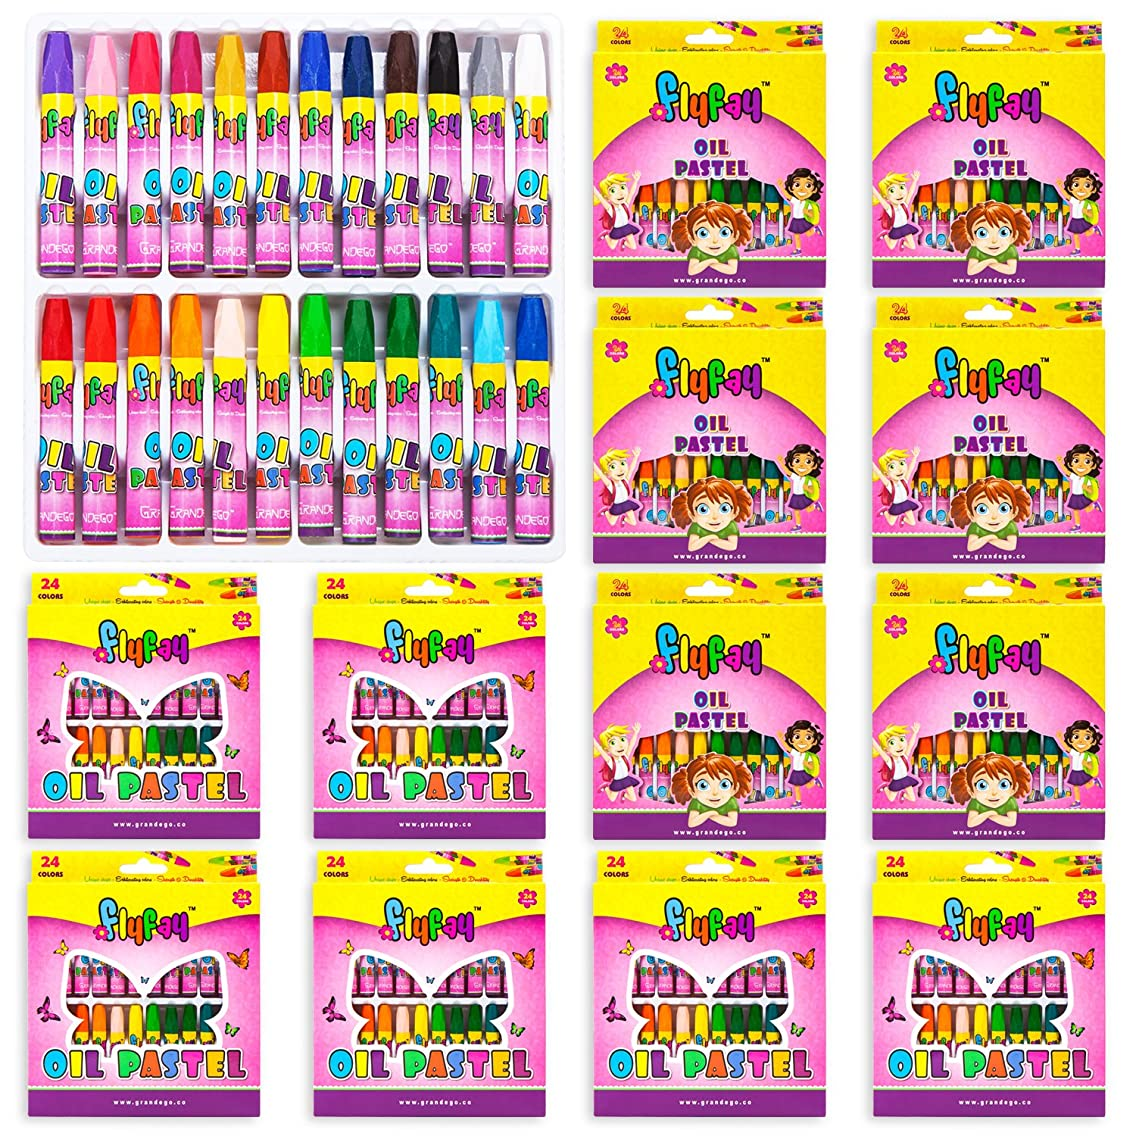 Flyfay 24 Oil Pastel Art Set   Bulk Pack of 12 Set, Children's Coloring Supplies with Tapered Points, Hexagonal Shape and Brilliant Colors - 24 Durable Artists Pastels